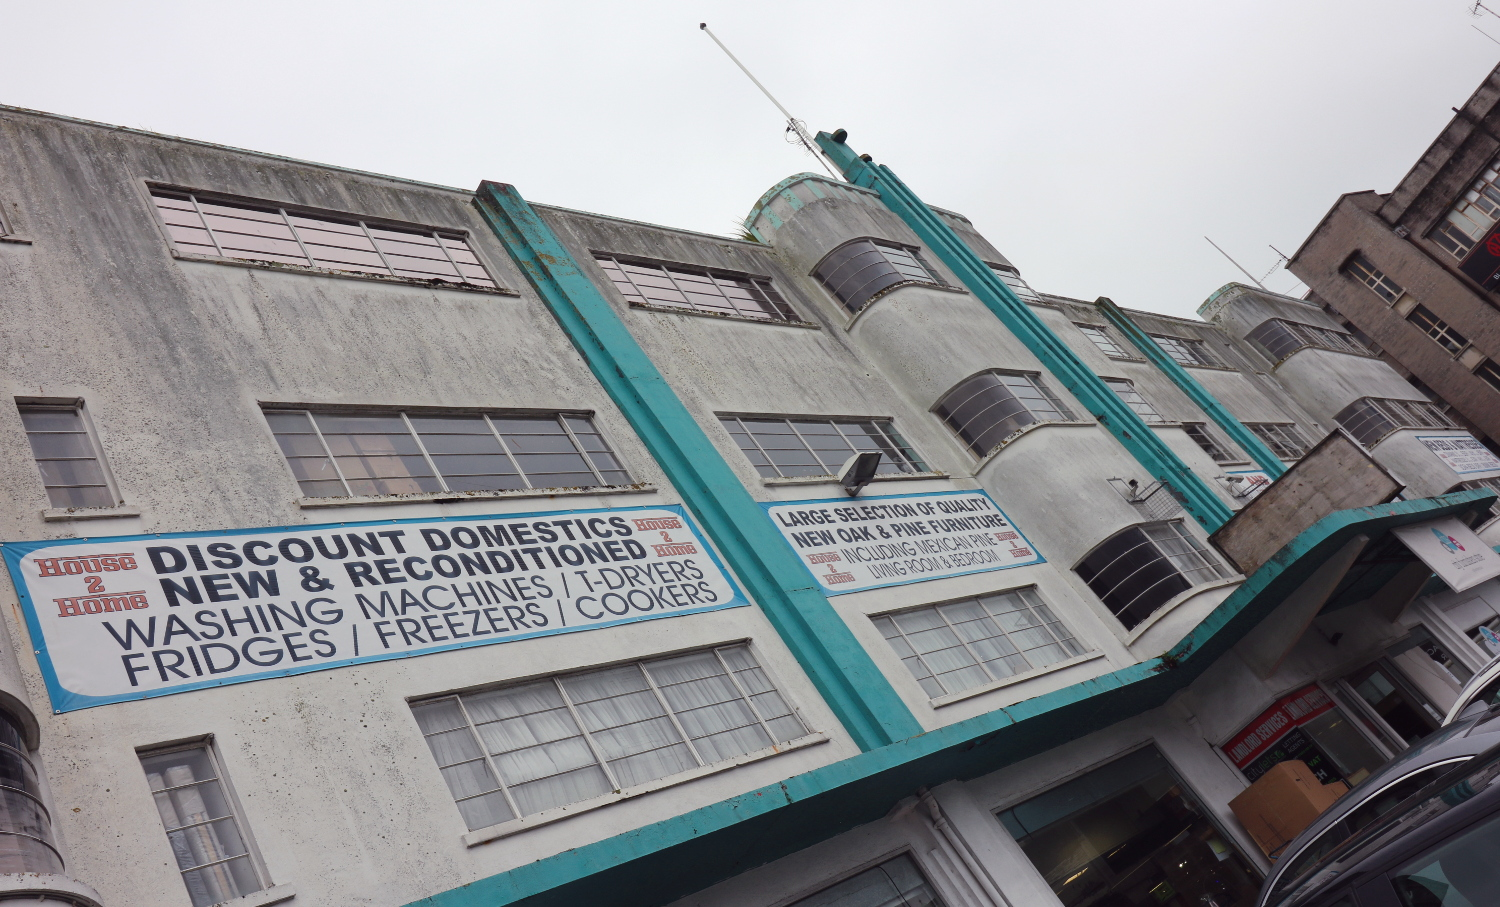 Assets or Eyesores? Plymouth's Art Deco Survivors